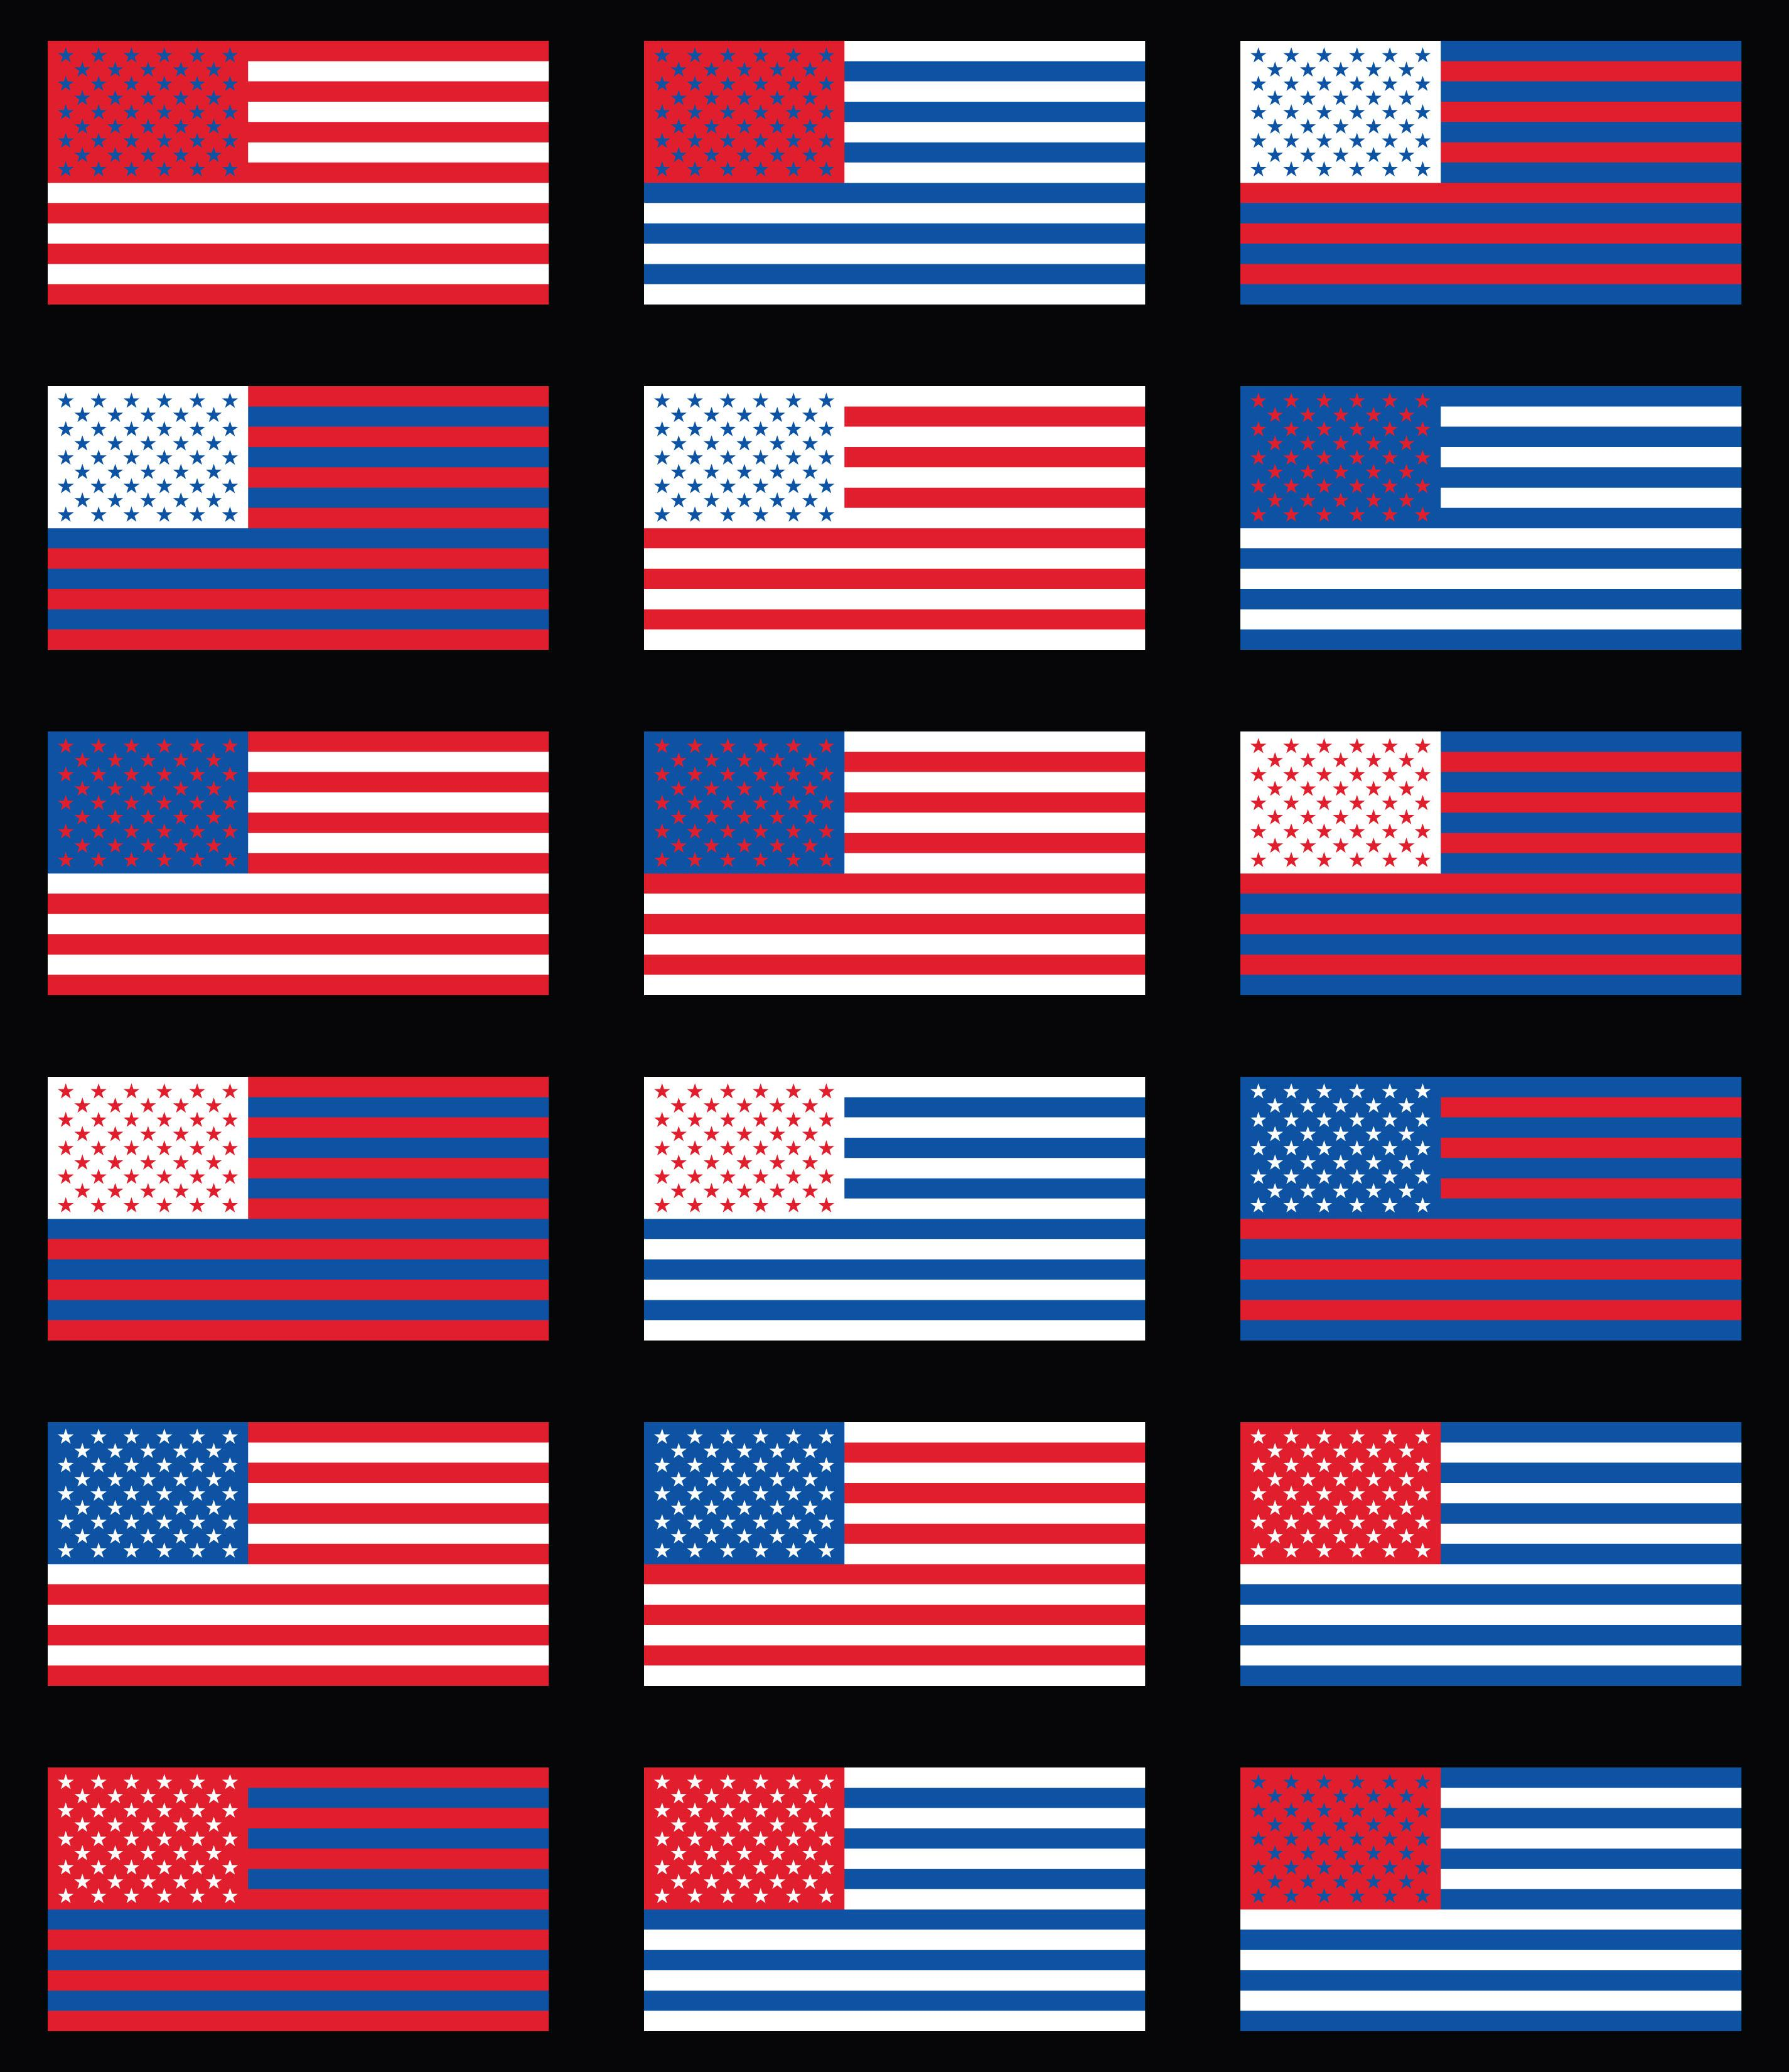 Flag Of Usa With Inverted Colors Vexillology